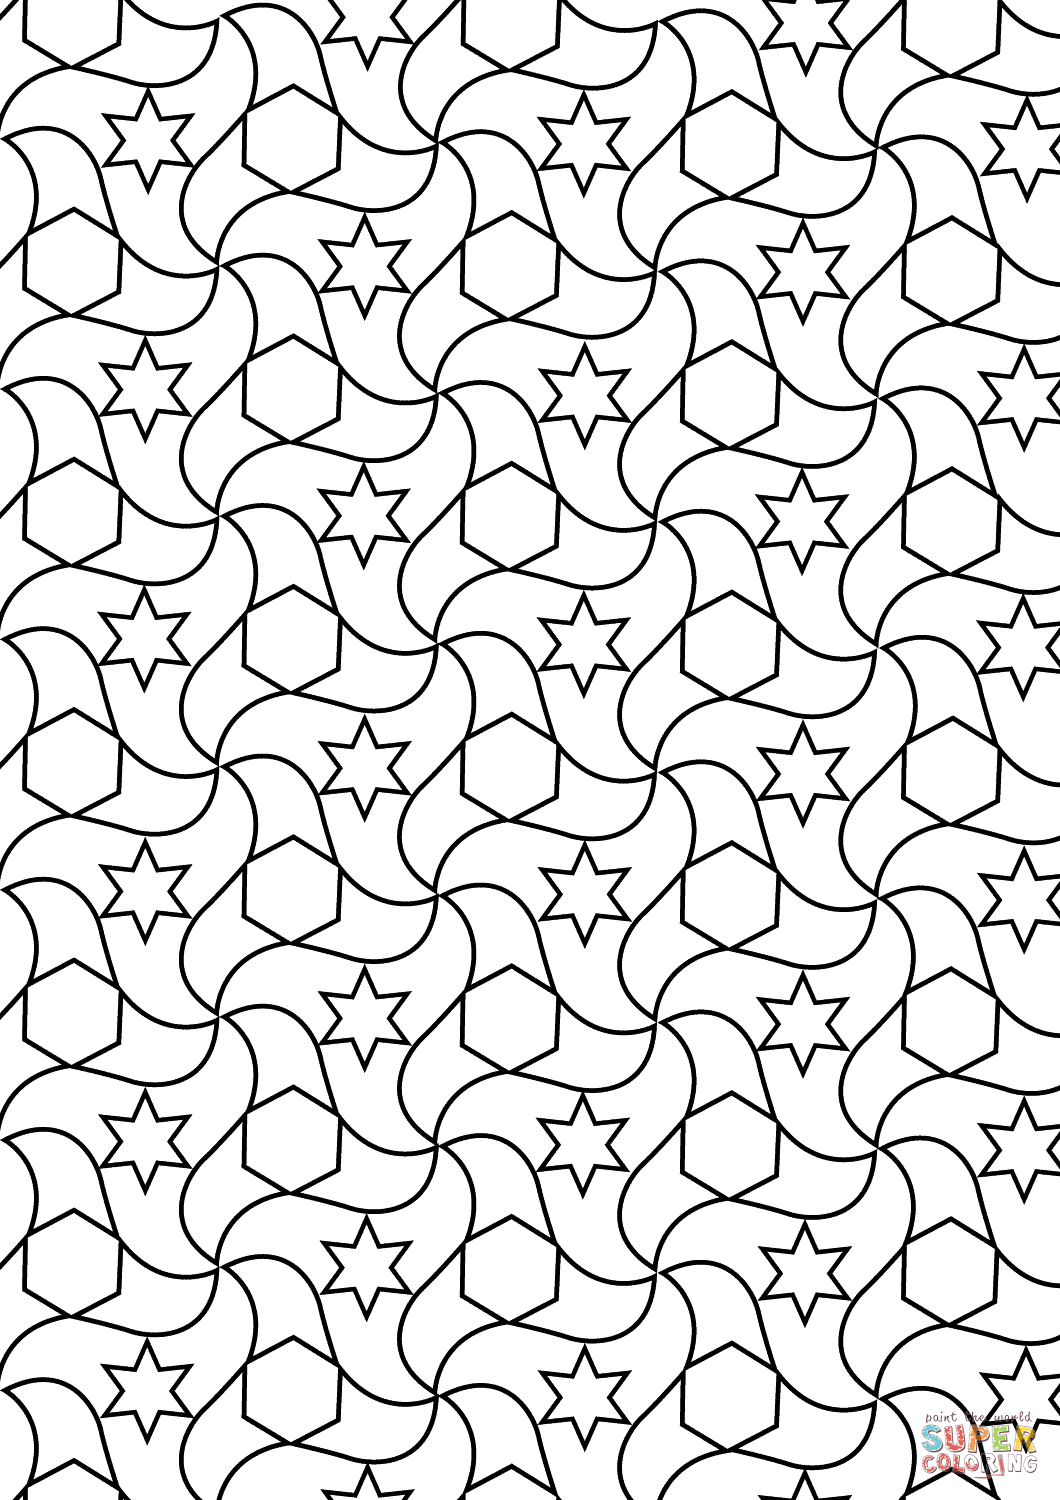 Uncategorized Islamic Art Coloring Pages alhambra tessellations coloring page free printable art cultureislamic pages pattern islamic with array x